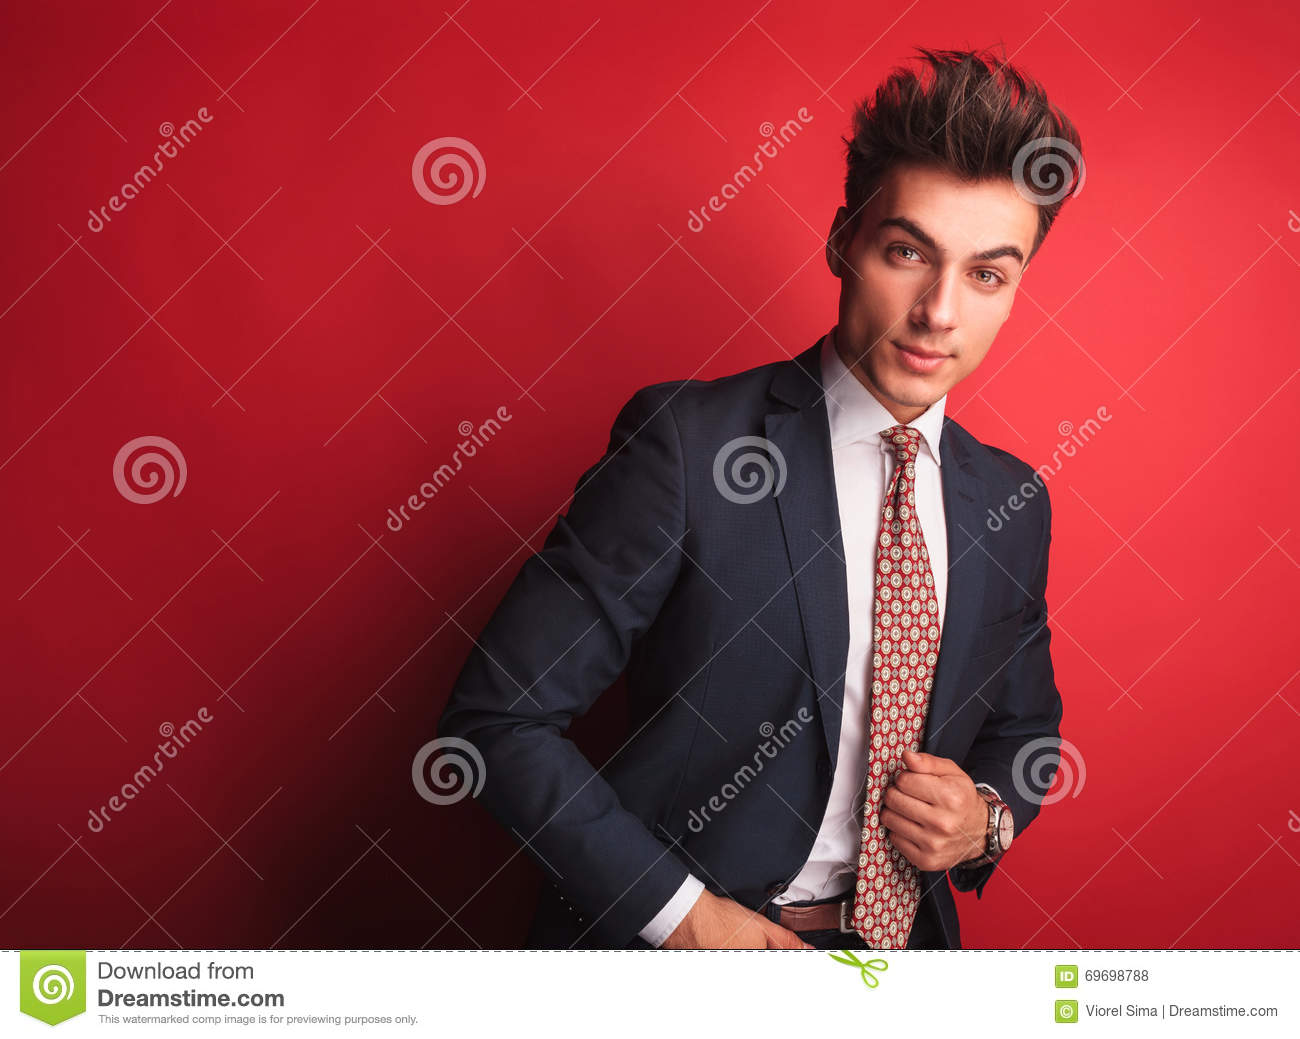 3140327c6525 Portrait young businessman in black suit with red tie, posing in red studio  background while looking at the camera. he is leaning on side with one hand  in ...